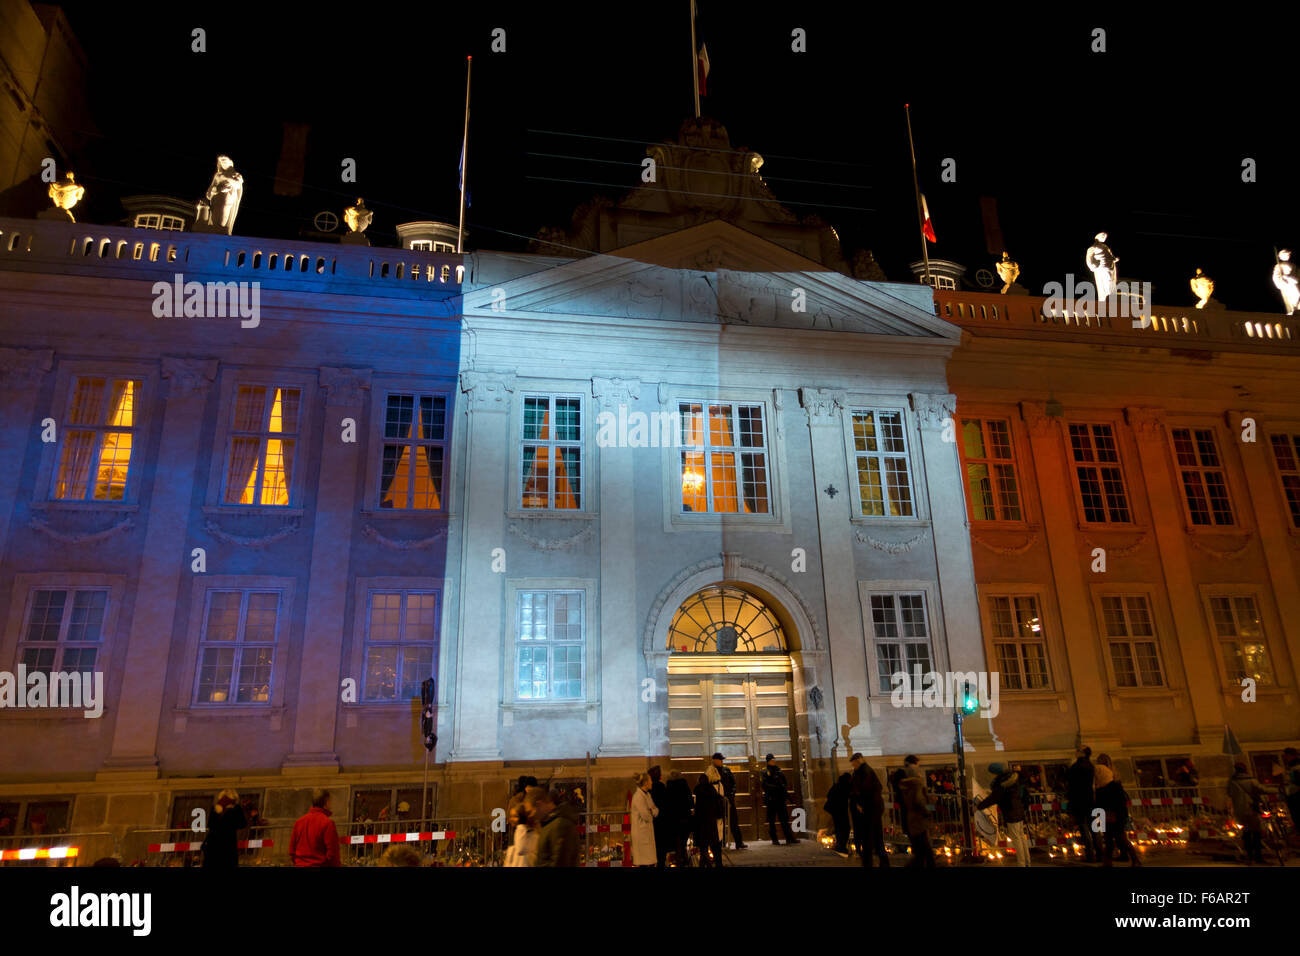 Copenhagen, Denmark, 15th November, 2015. Thousands of people in Copenhagen show their solidarity and sympathy with the French people outside the French Embassy in Copenhagen after last Friday's terror attacks in Paris. The huge amount of flowers and messages still grows this Sunday evening. Kongens Nytorv in Copenhagen is lit by the colours of the French Tricolore projected on the building of the still crowded French Embassy after a day of official memorial events and spontaneous actions of sympathy and solidarity. Credit:  Niels Quist/Alamy Live News Stock Photo